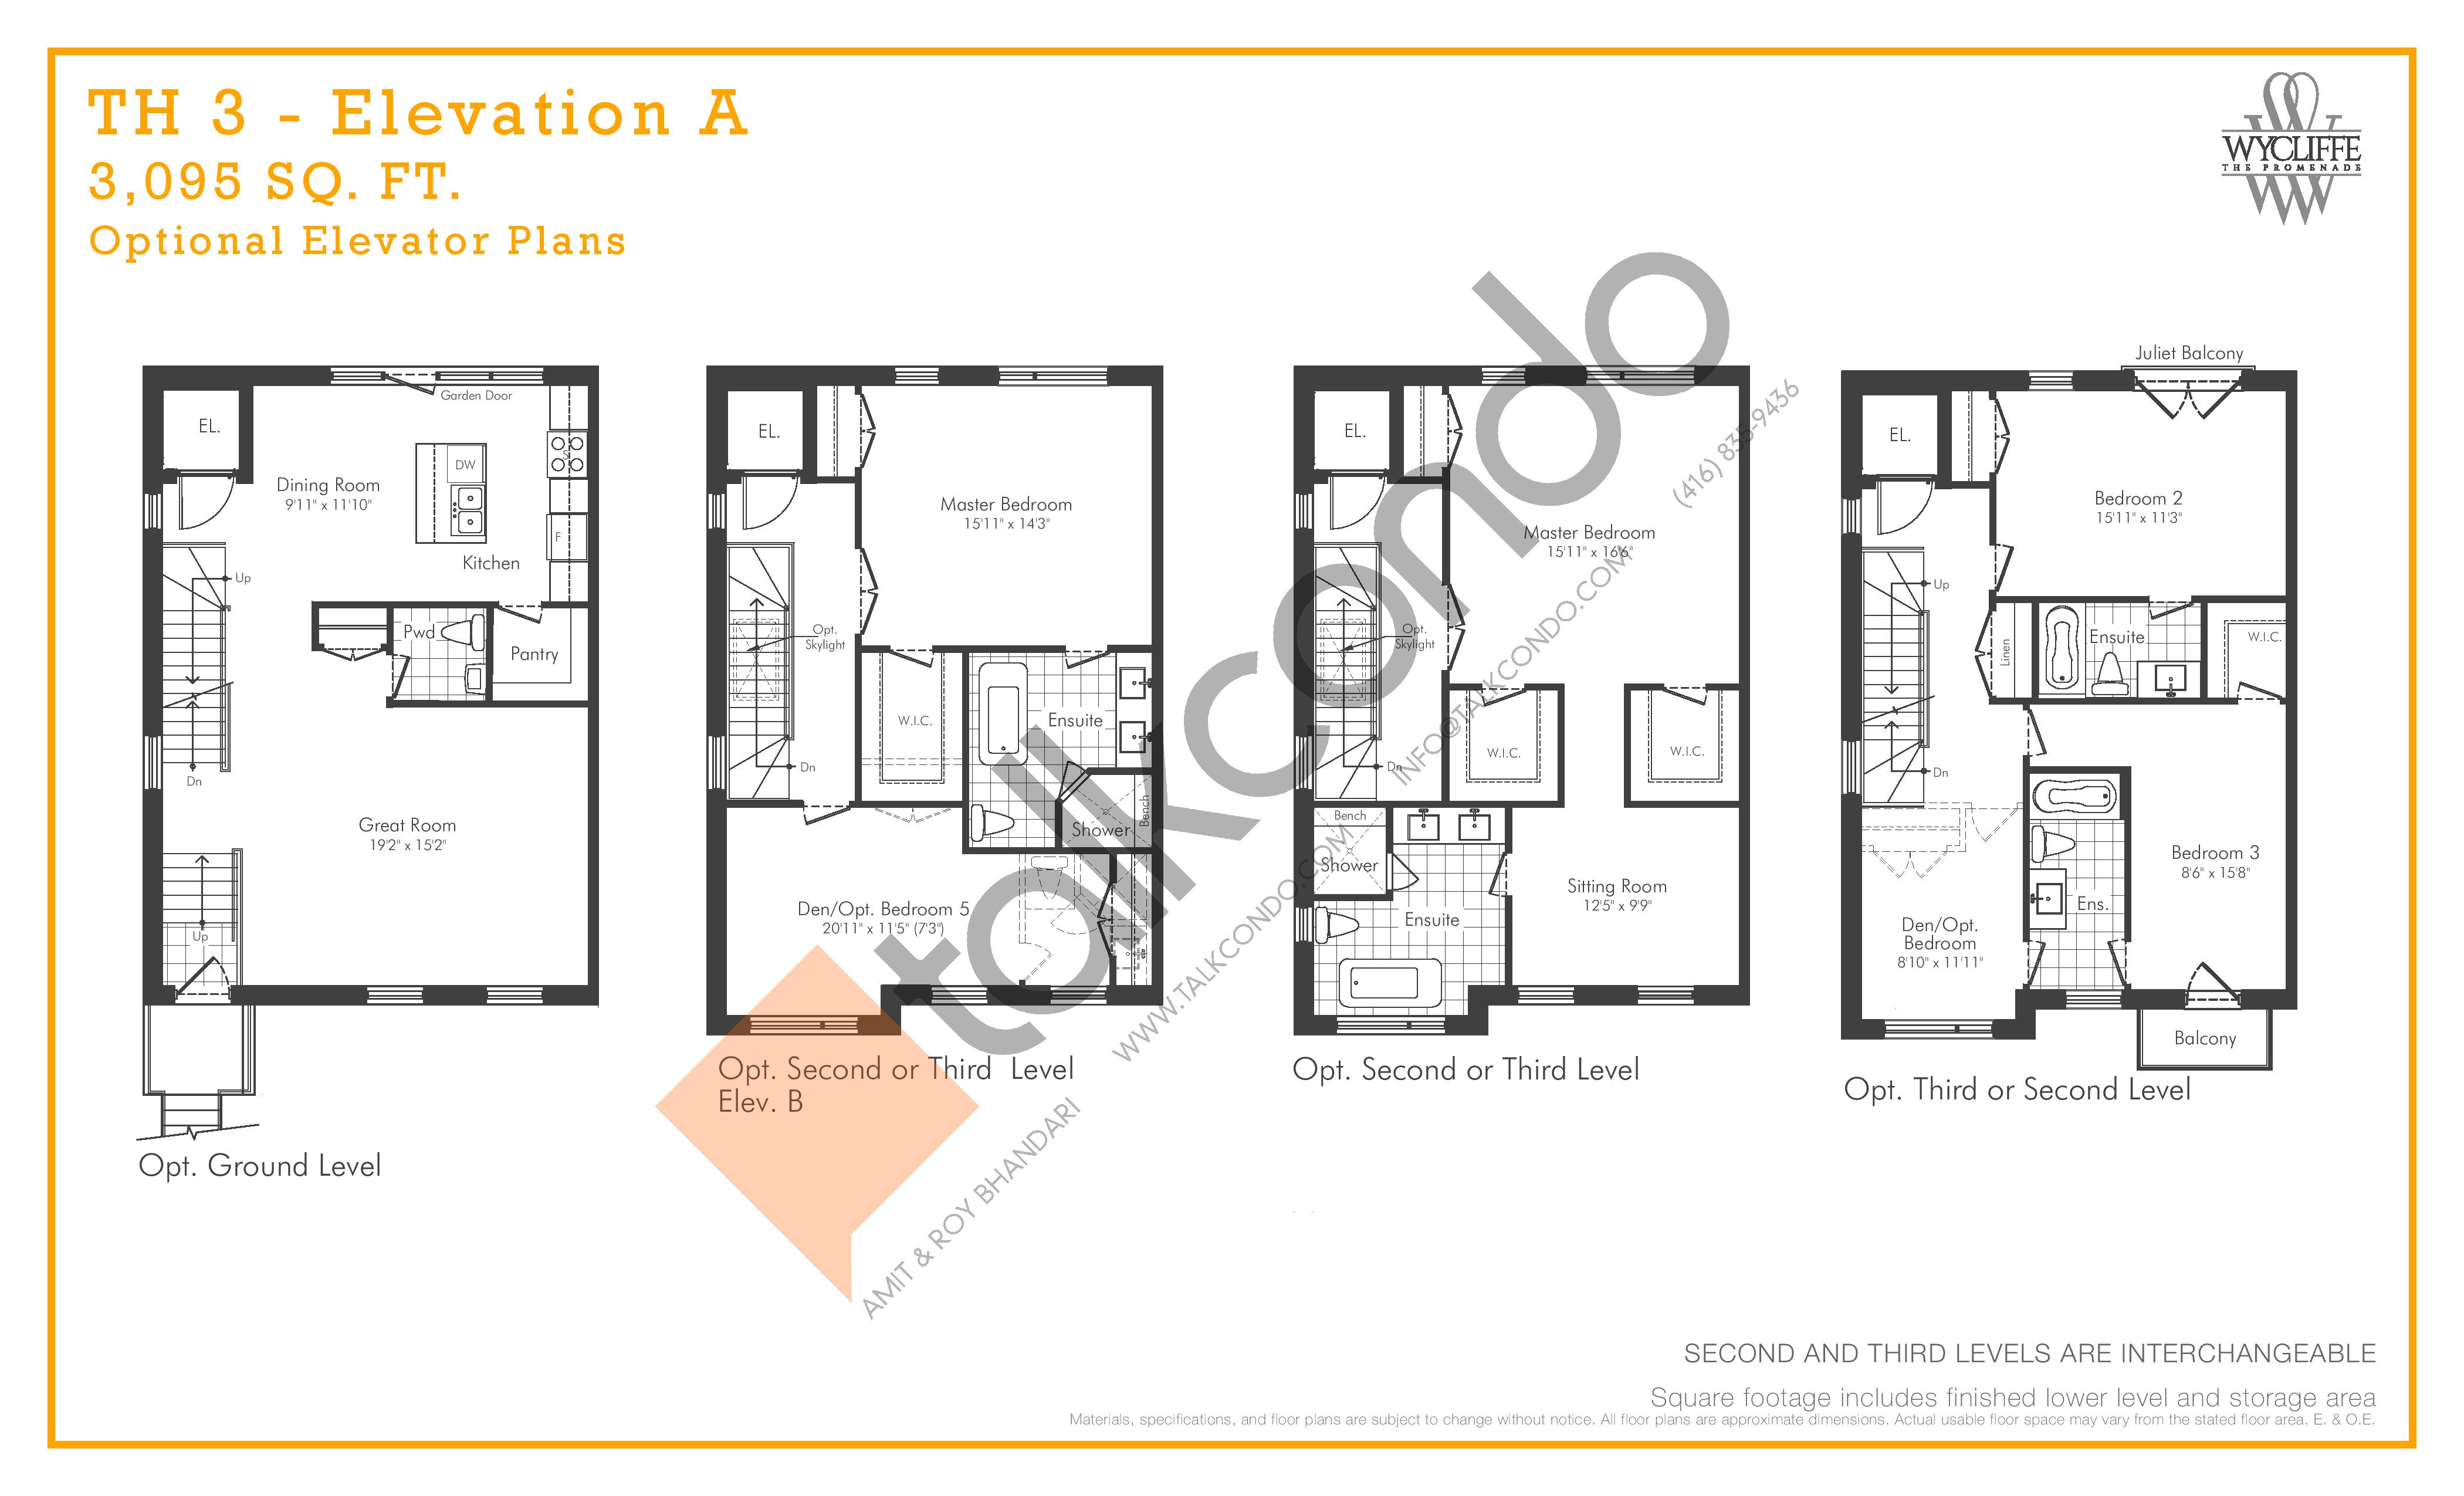 TH 3 - Elevation A Optional Elevator Plans Floor Plan at Wycliffe at the Promenade - 3095 sq.ft